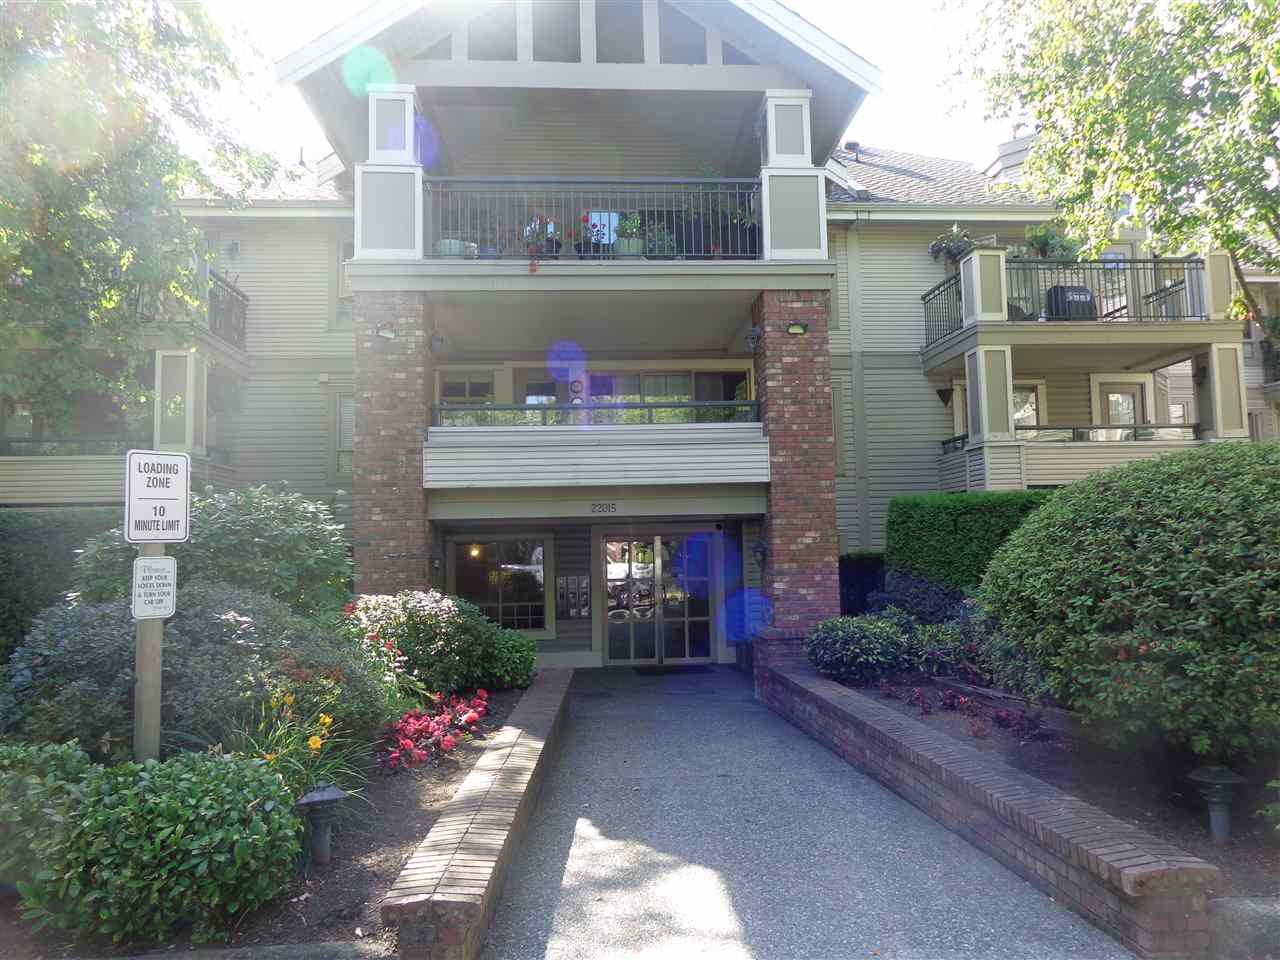 "Main Photo: 107 22015 48 Avenue in Langley: Murrayville Condo for sale in ""AUTUMN RIDGE"" : MLS®# R2295522"